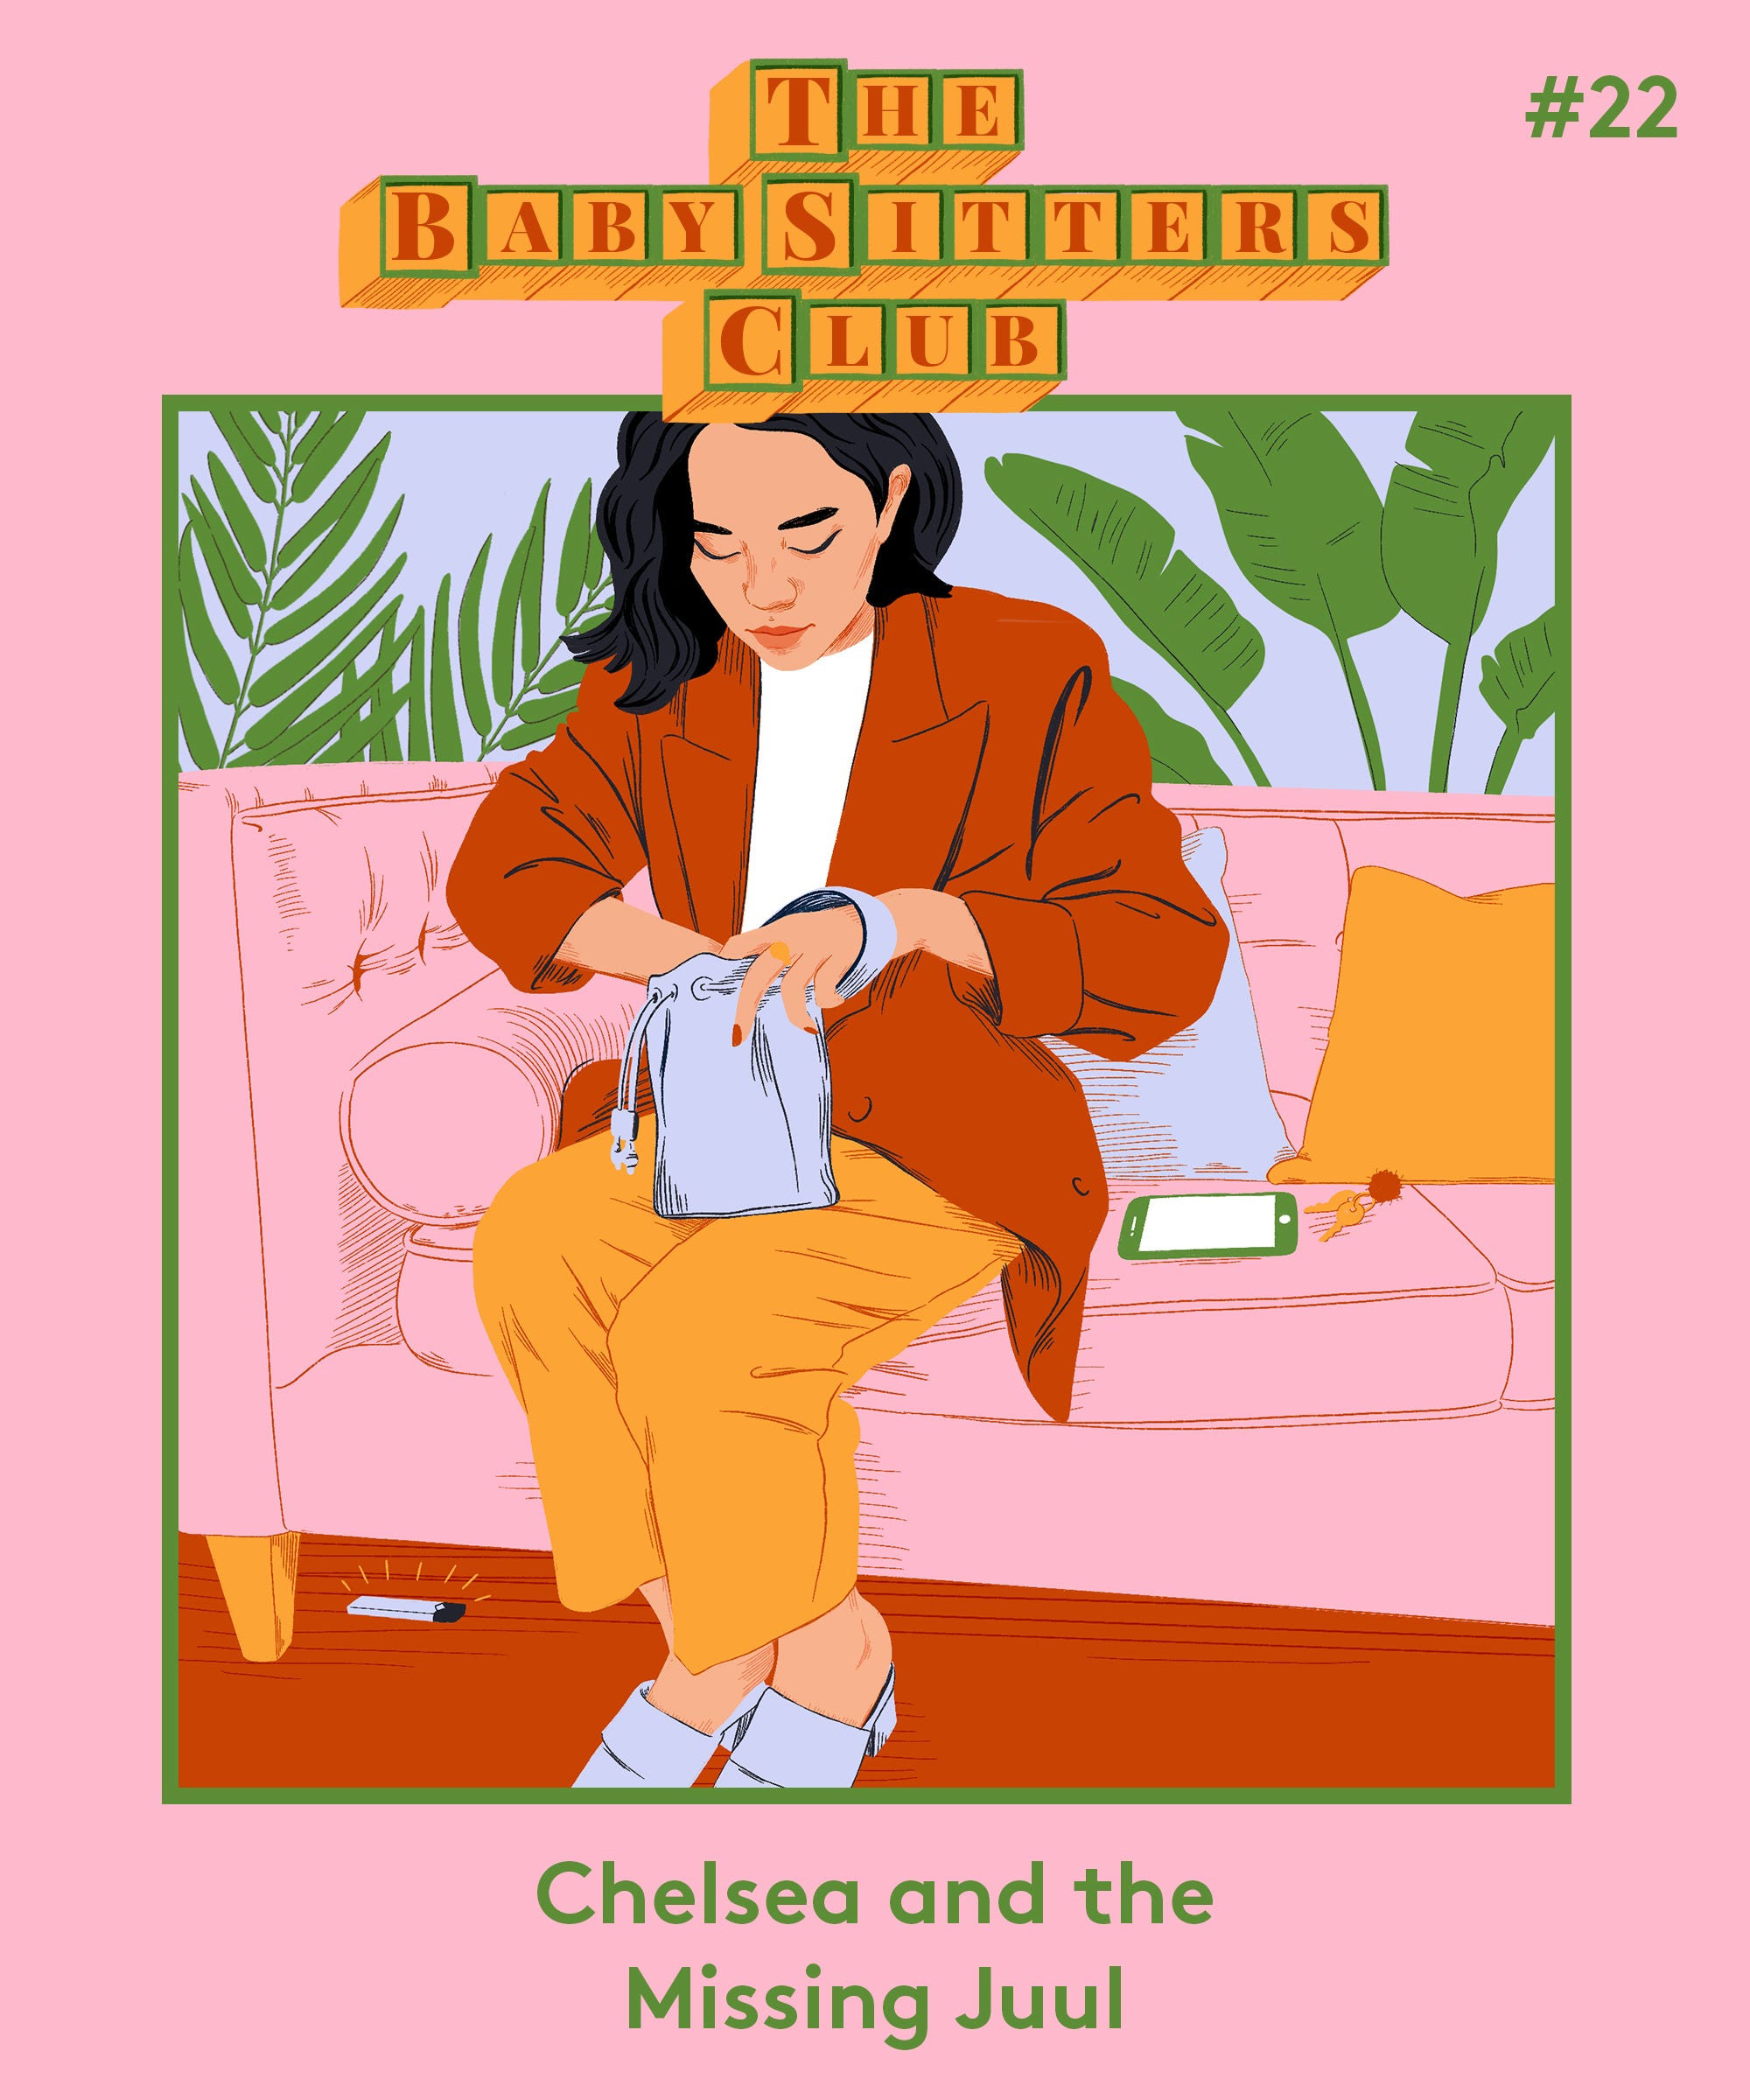 The Baby-Sitters Club, But Witches: How Kate Williams Channeled '90s Classics For Her Very 2019 Novel